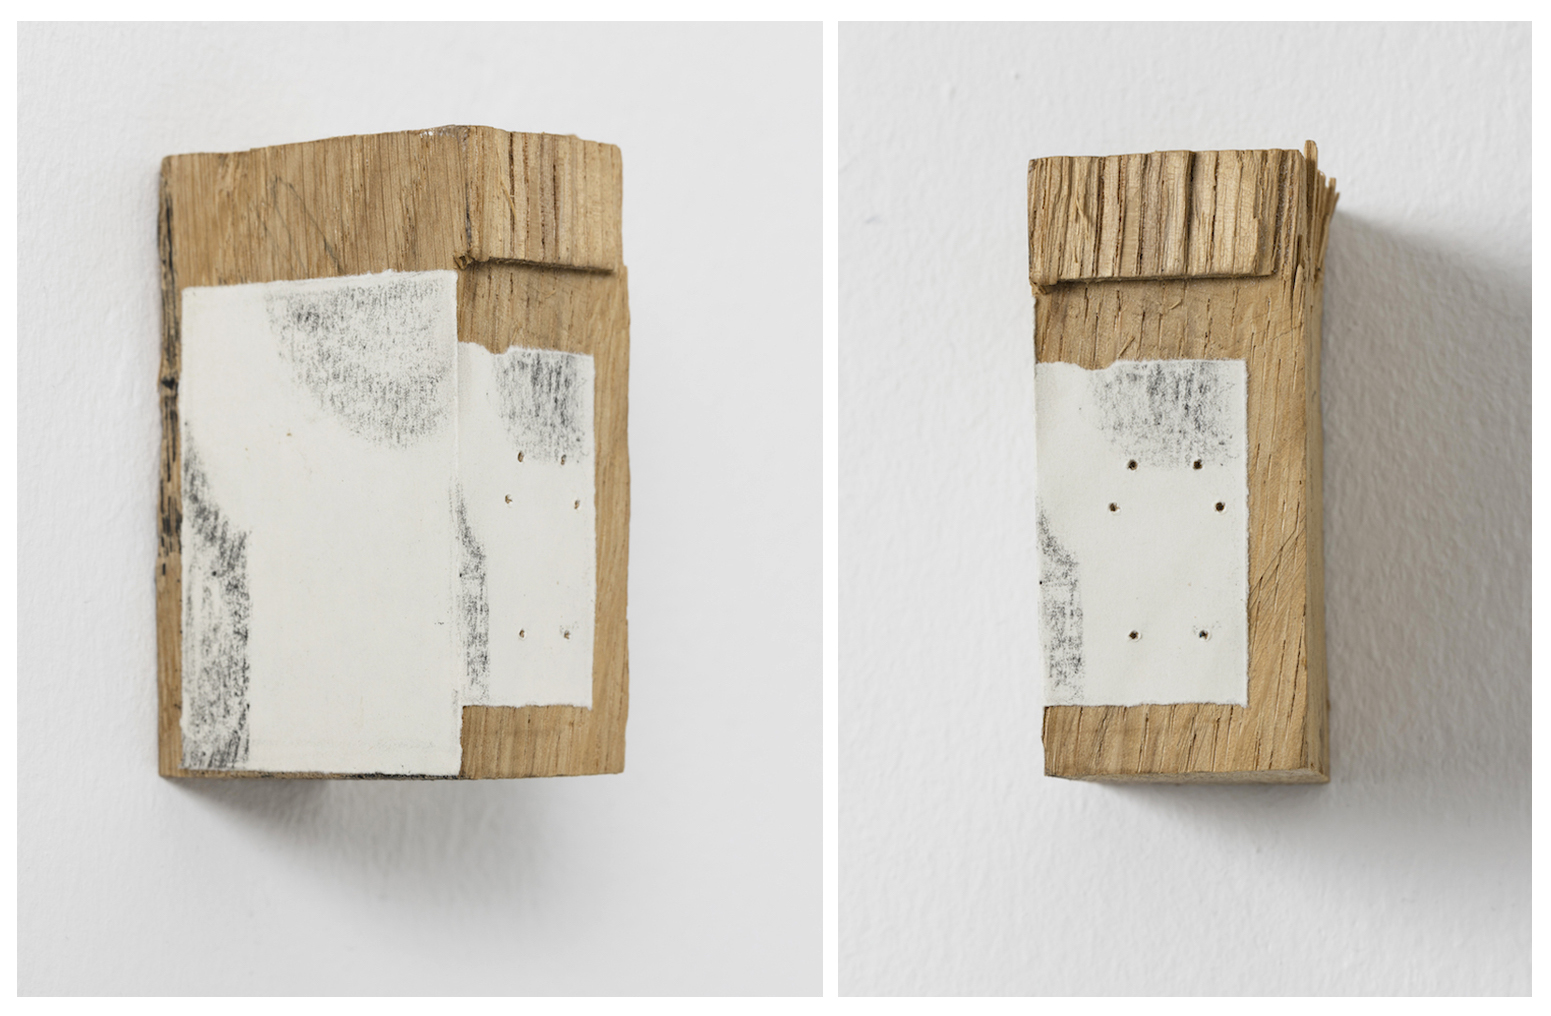 Untitled 2016    8x3,5x5 cm.    Wood, paper, graphite and 6 holes